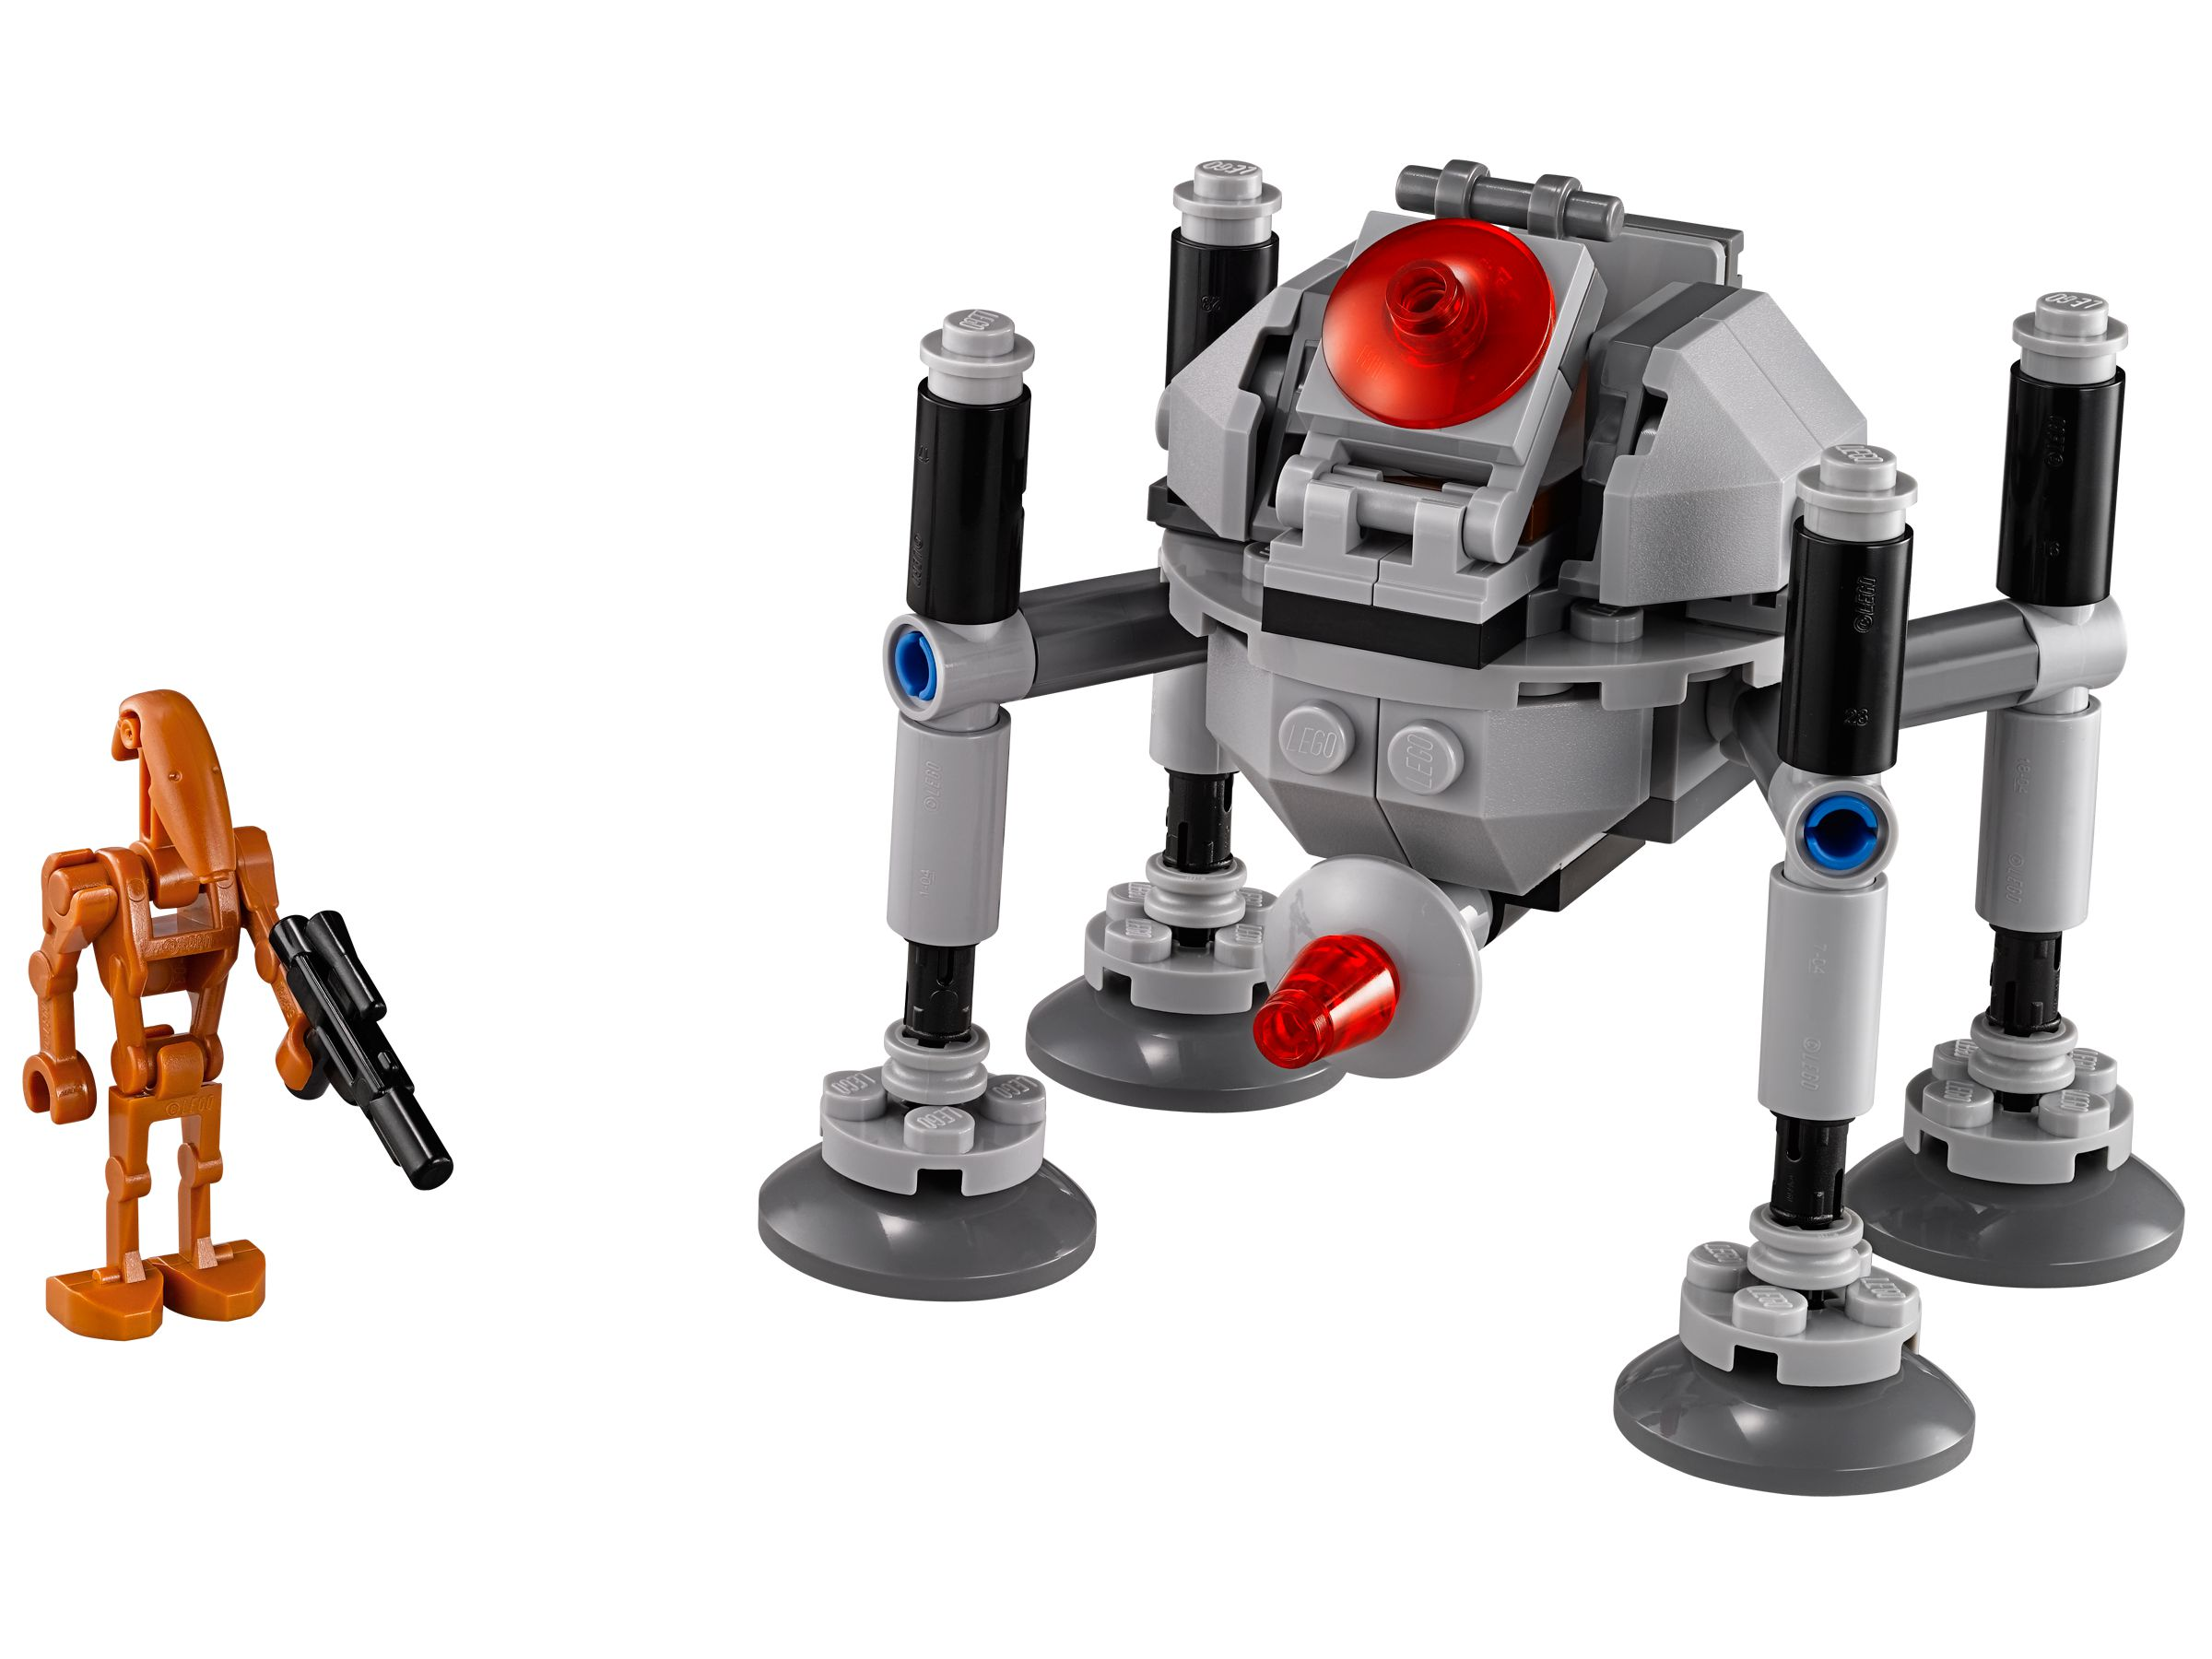 LEGO Star Wars 75077 Homing Spider Droid™ LEGO_75077.jpg